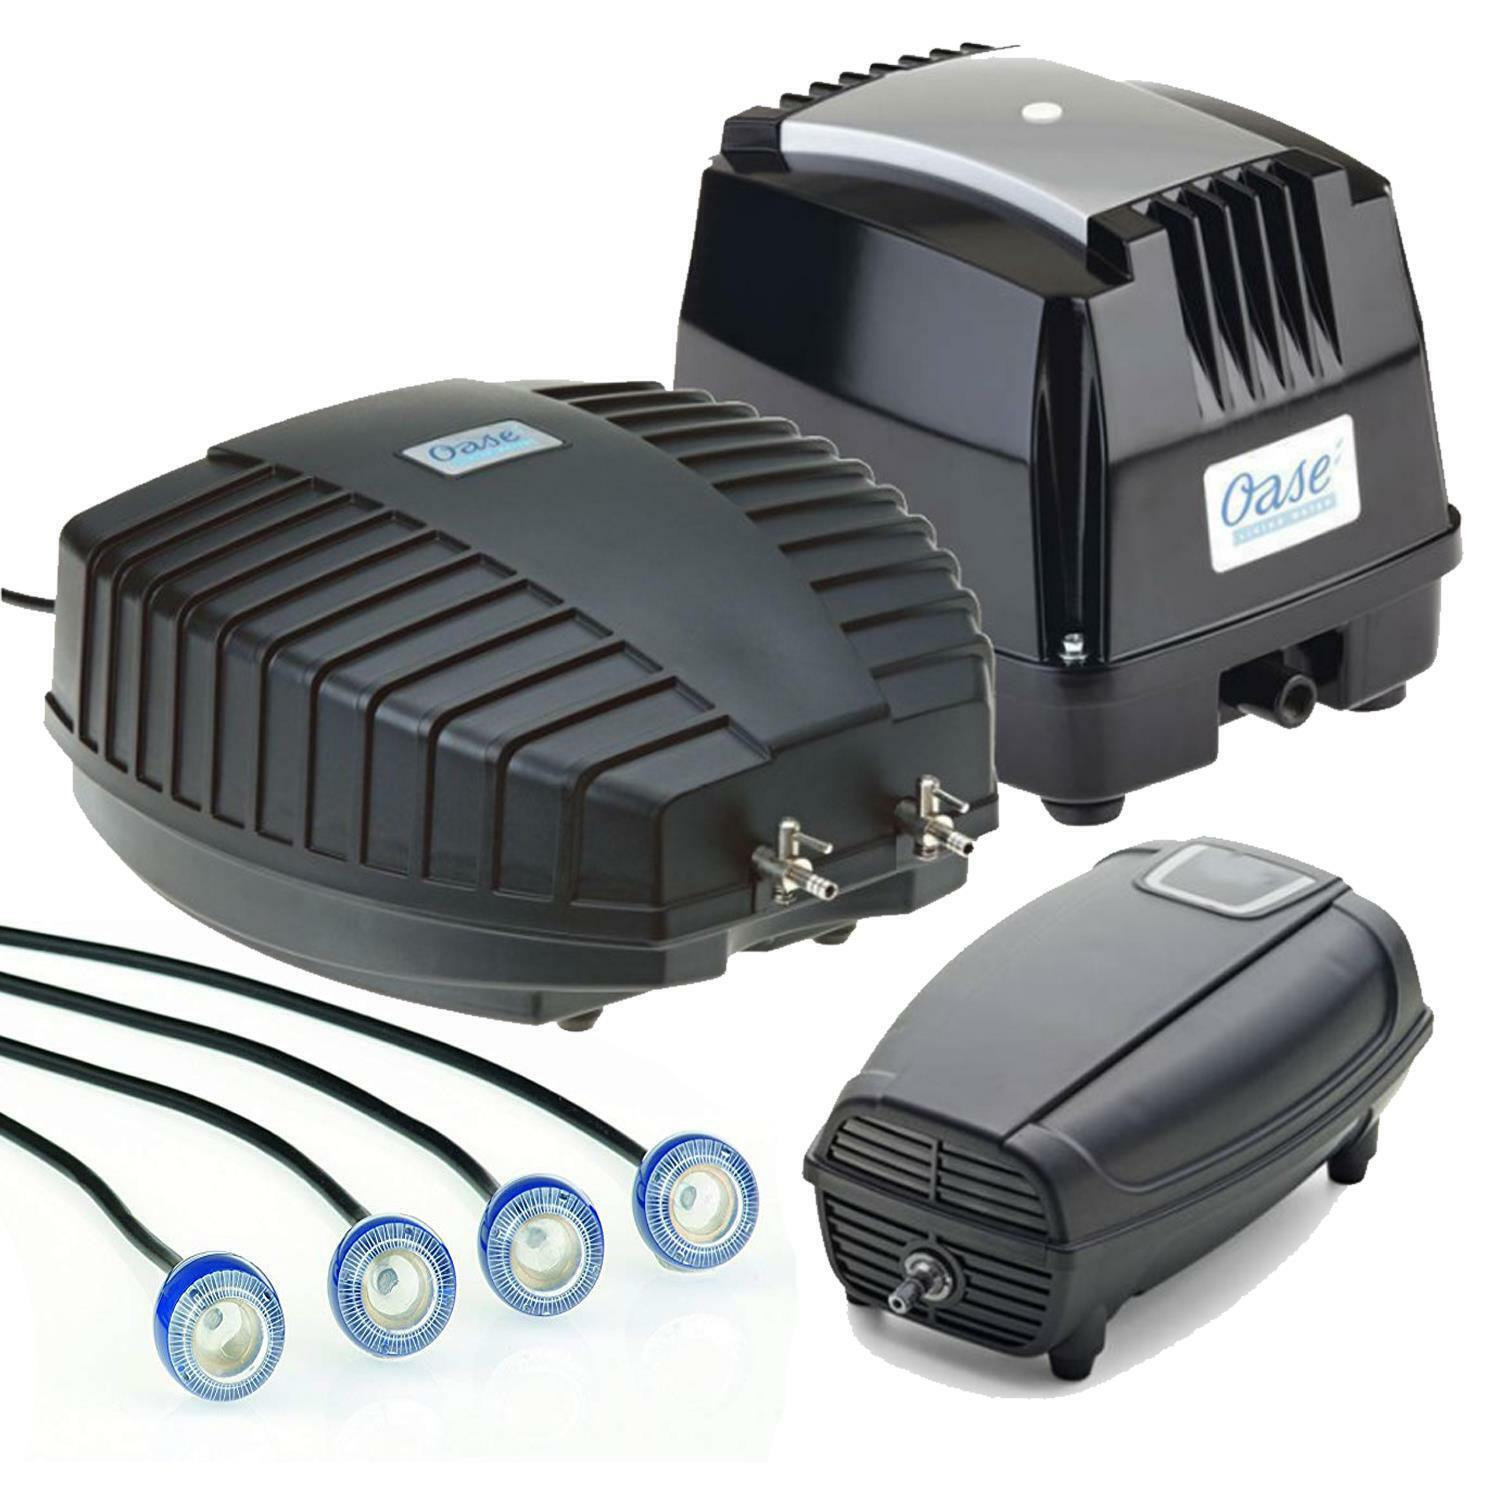 OASE AQUAOXY POND AIR PUMPS WATER OXYGEN AERATOR FLOW POND SYSTEM CLEANER